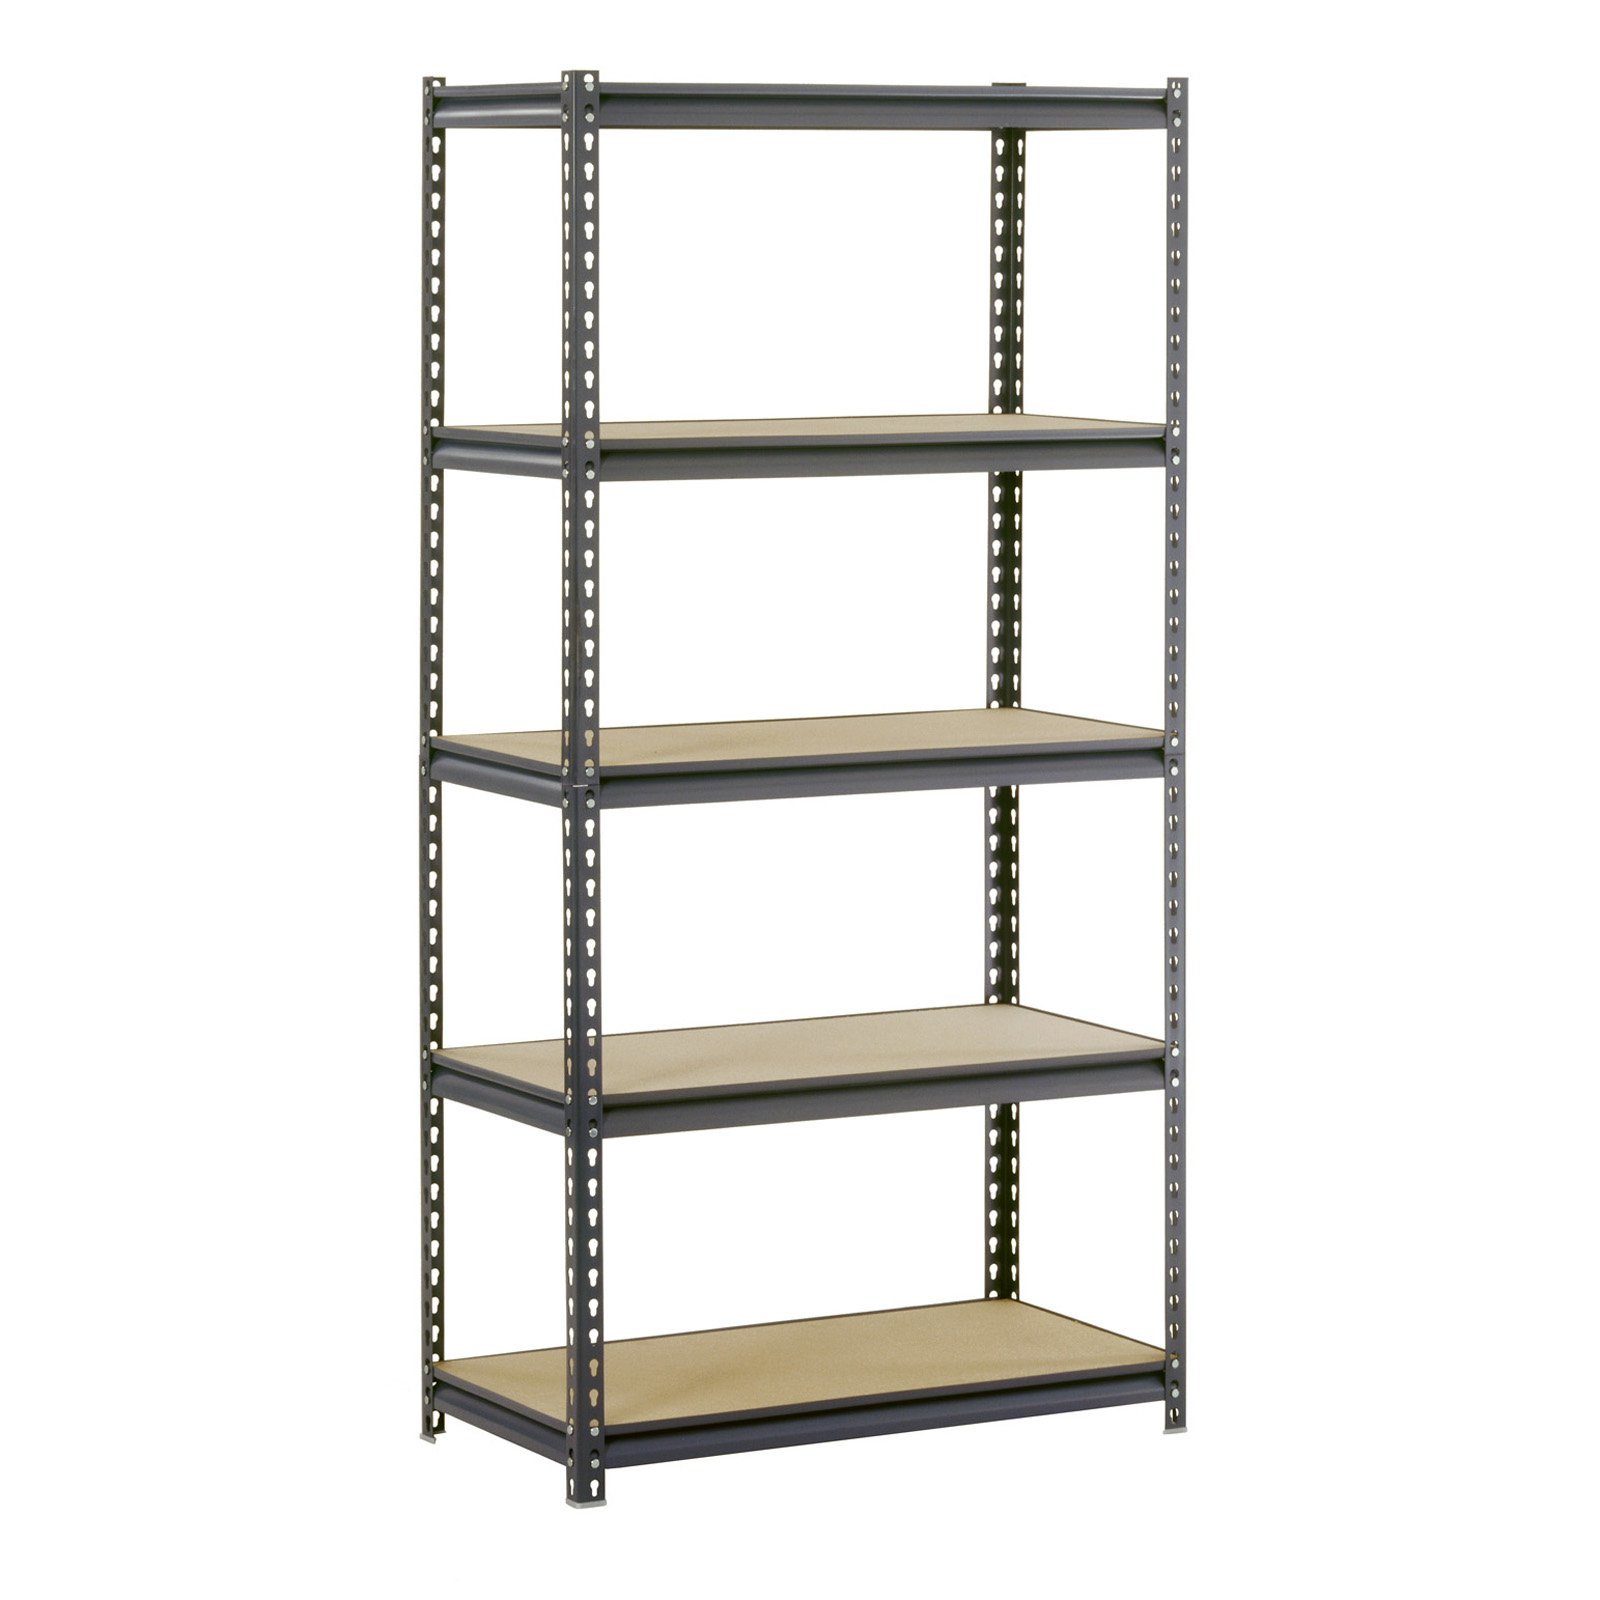 Edsal 36 in. Ultra Rack - 5 Shelf